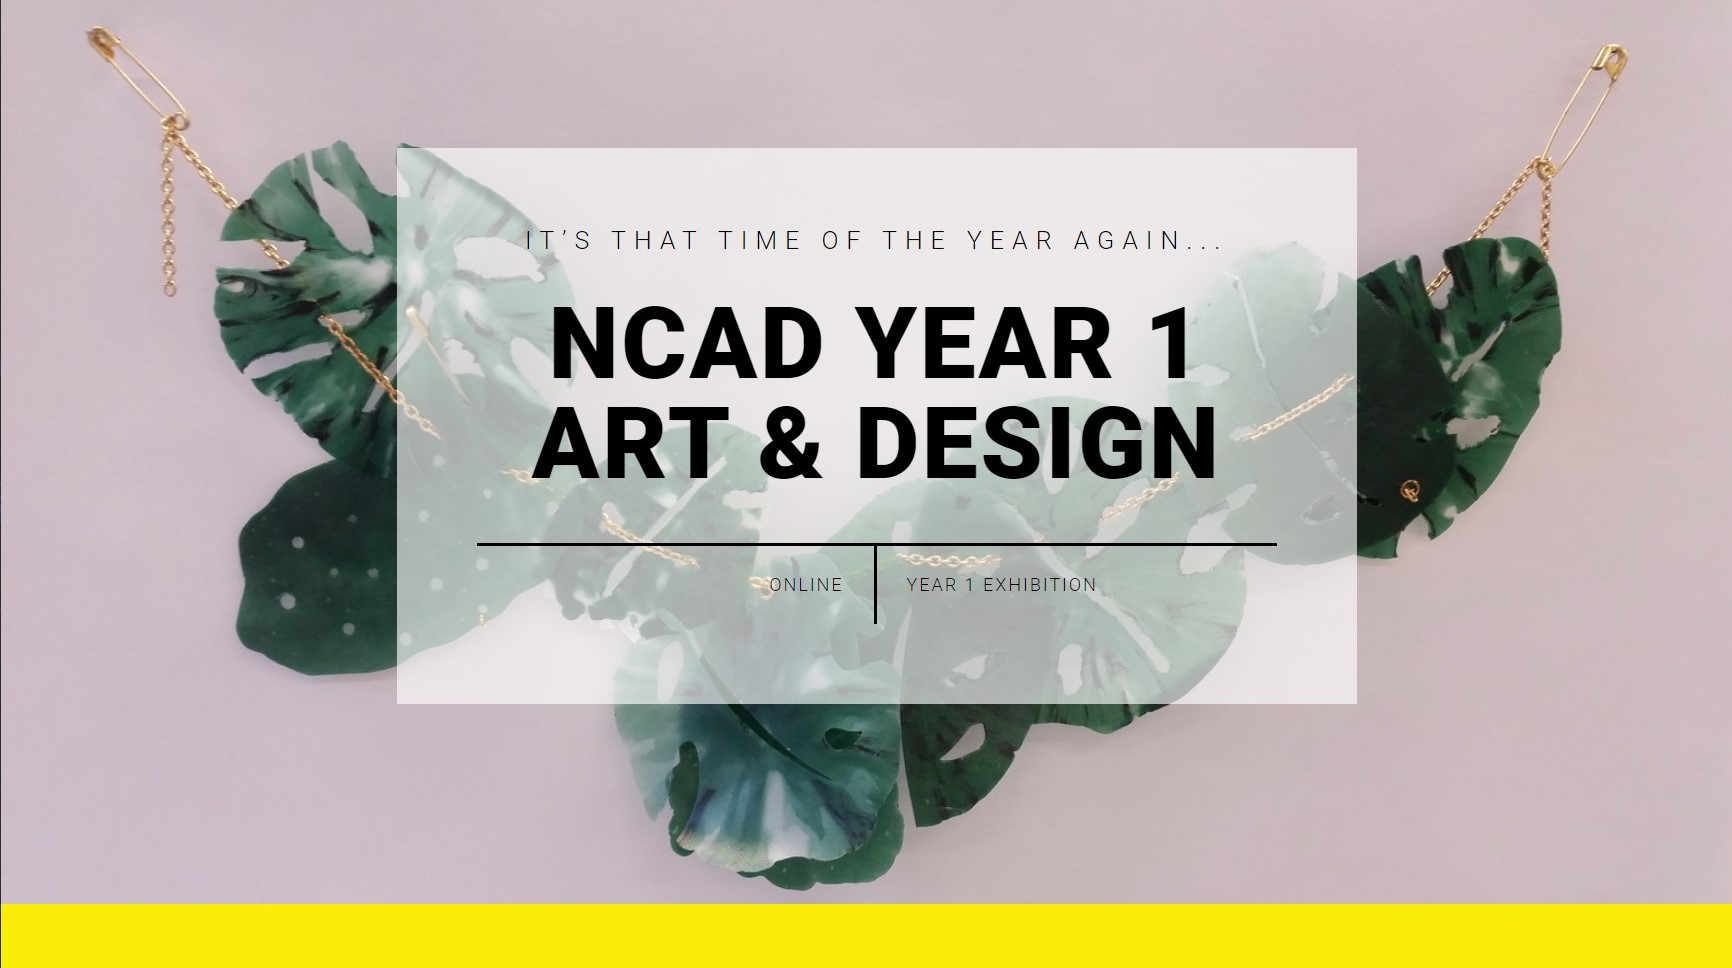 NCAD Year 1 Art & Design Online